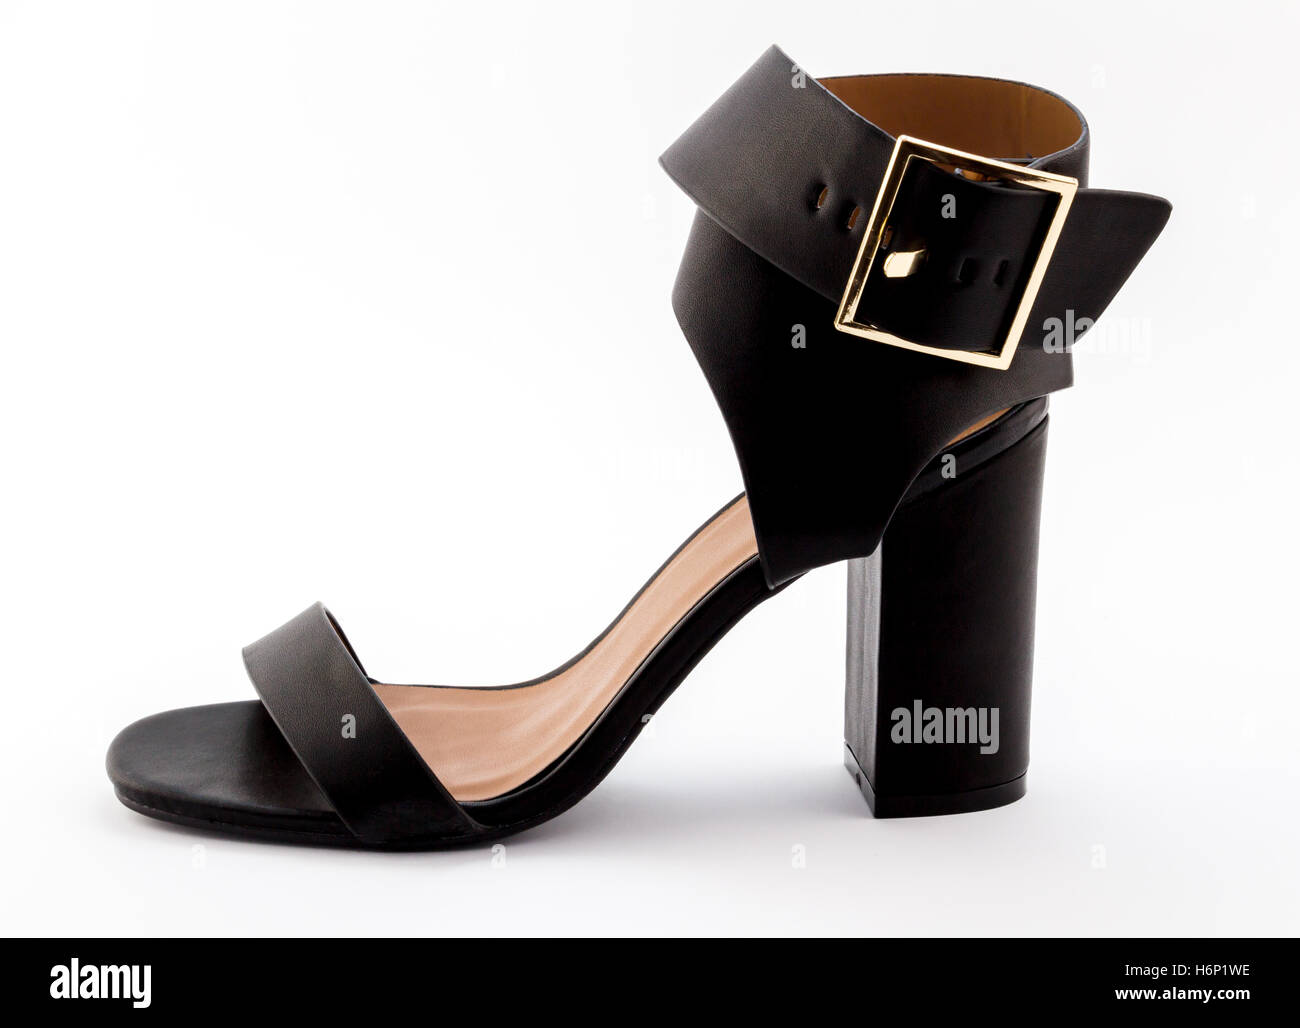 Female wide strapped black high heel sandal isolated on white - Stock Image